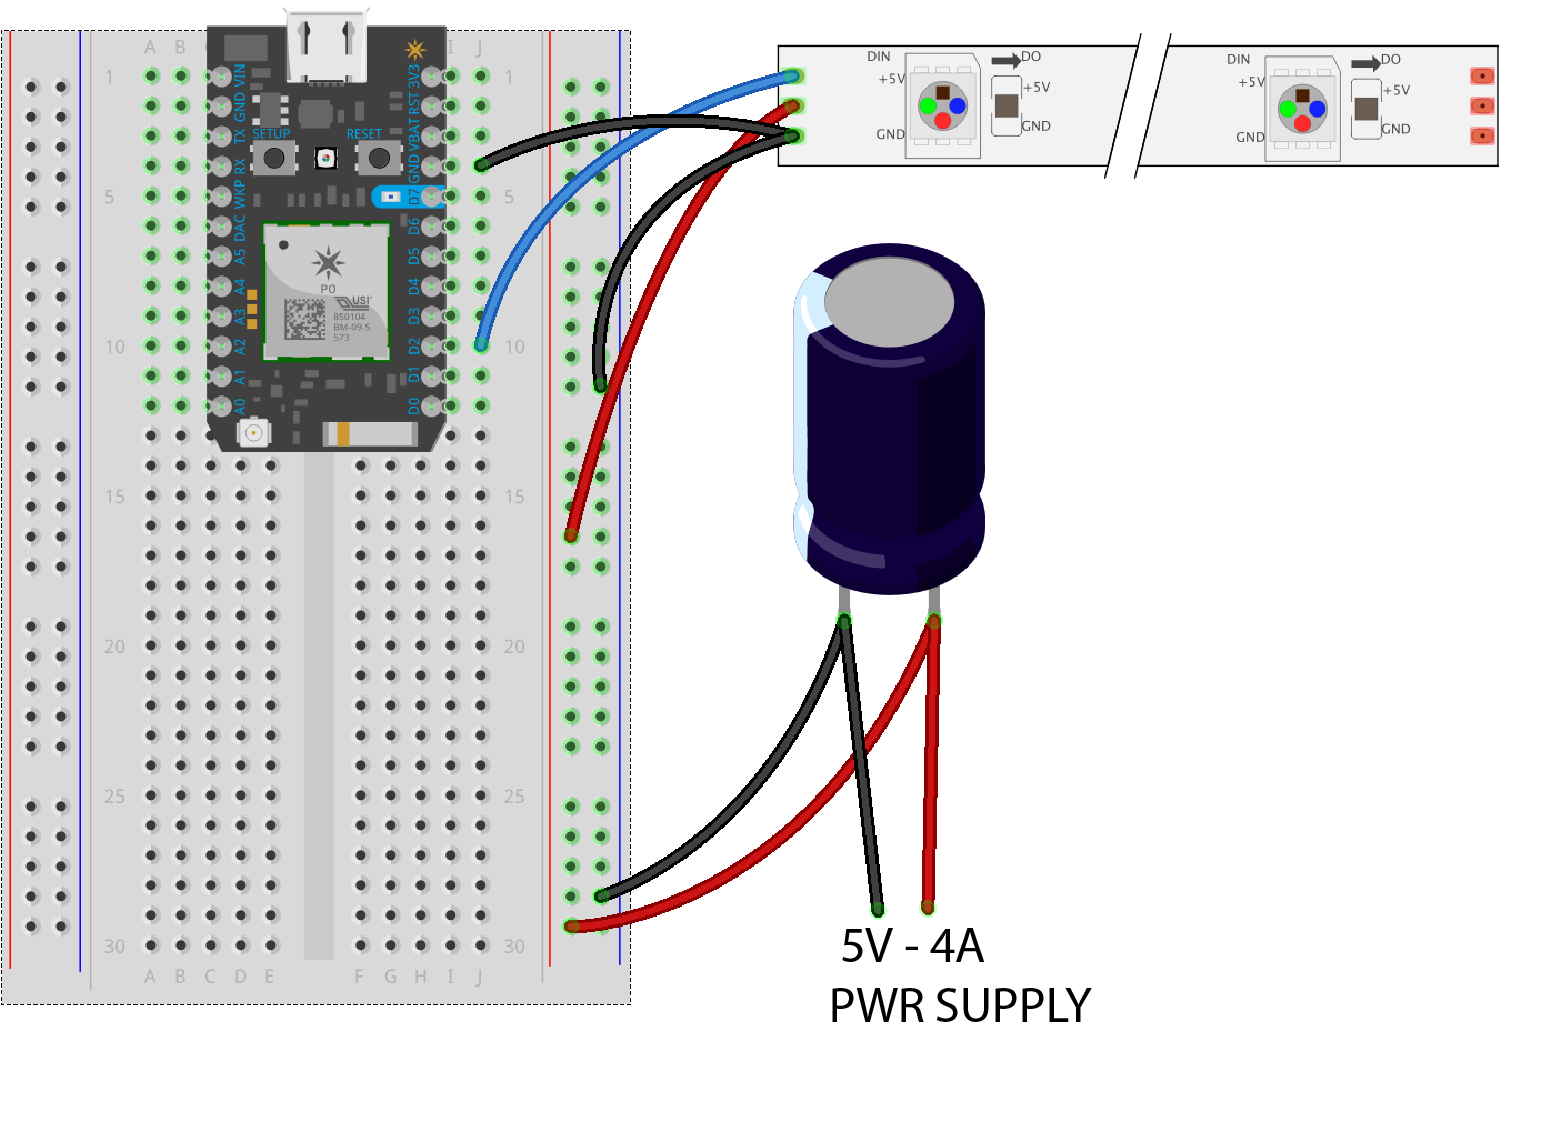 Iotuesday Diy Smart Backlit Mountain Scene News Sparkfun Start Stop Station Wiring Diagram Parallel Having A Hard Time Seeing The Circuit Click On For Closer Look